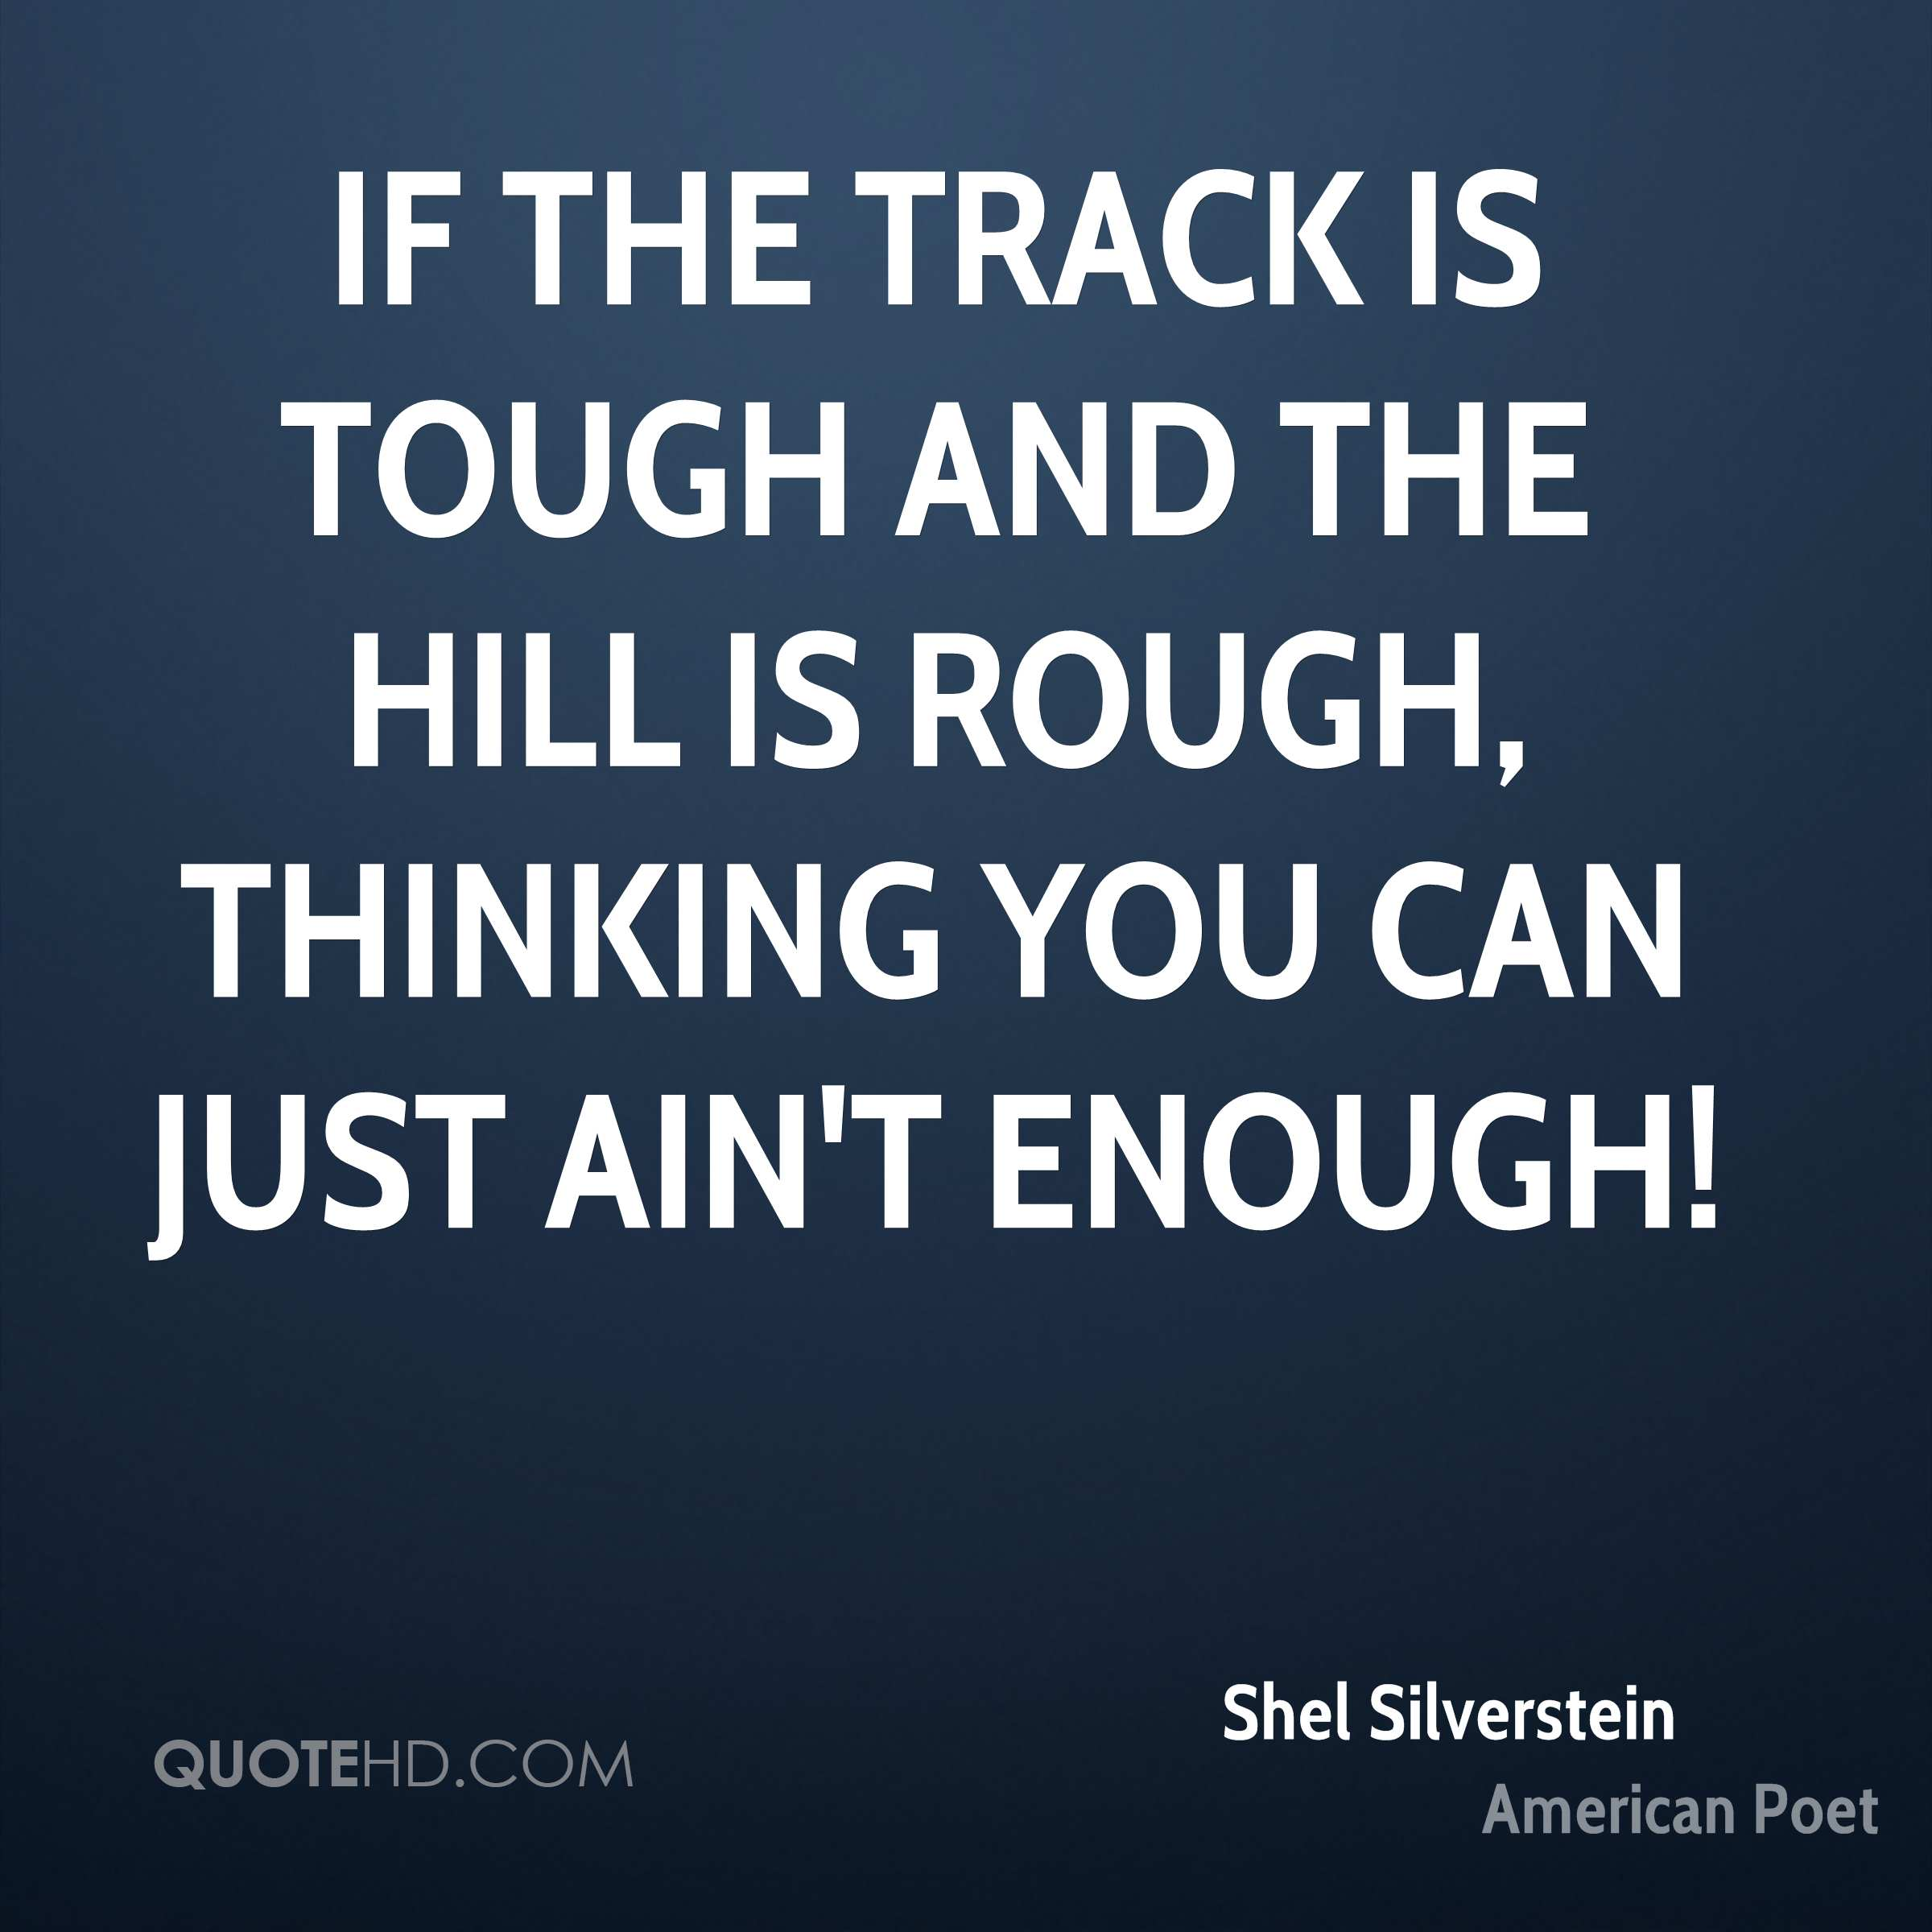 If the track is tough and the hill is rough, THINKING you can just ain't enough!